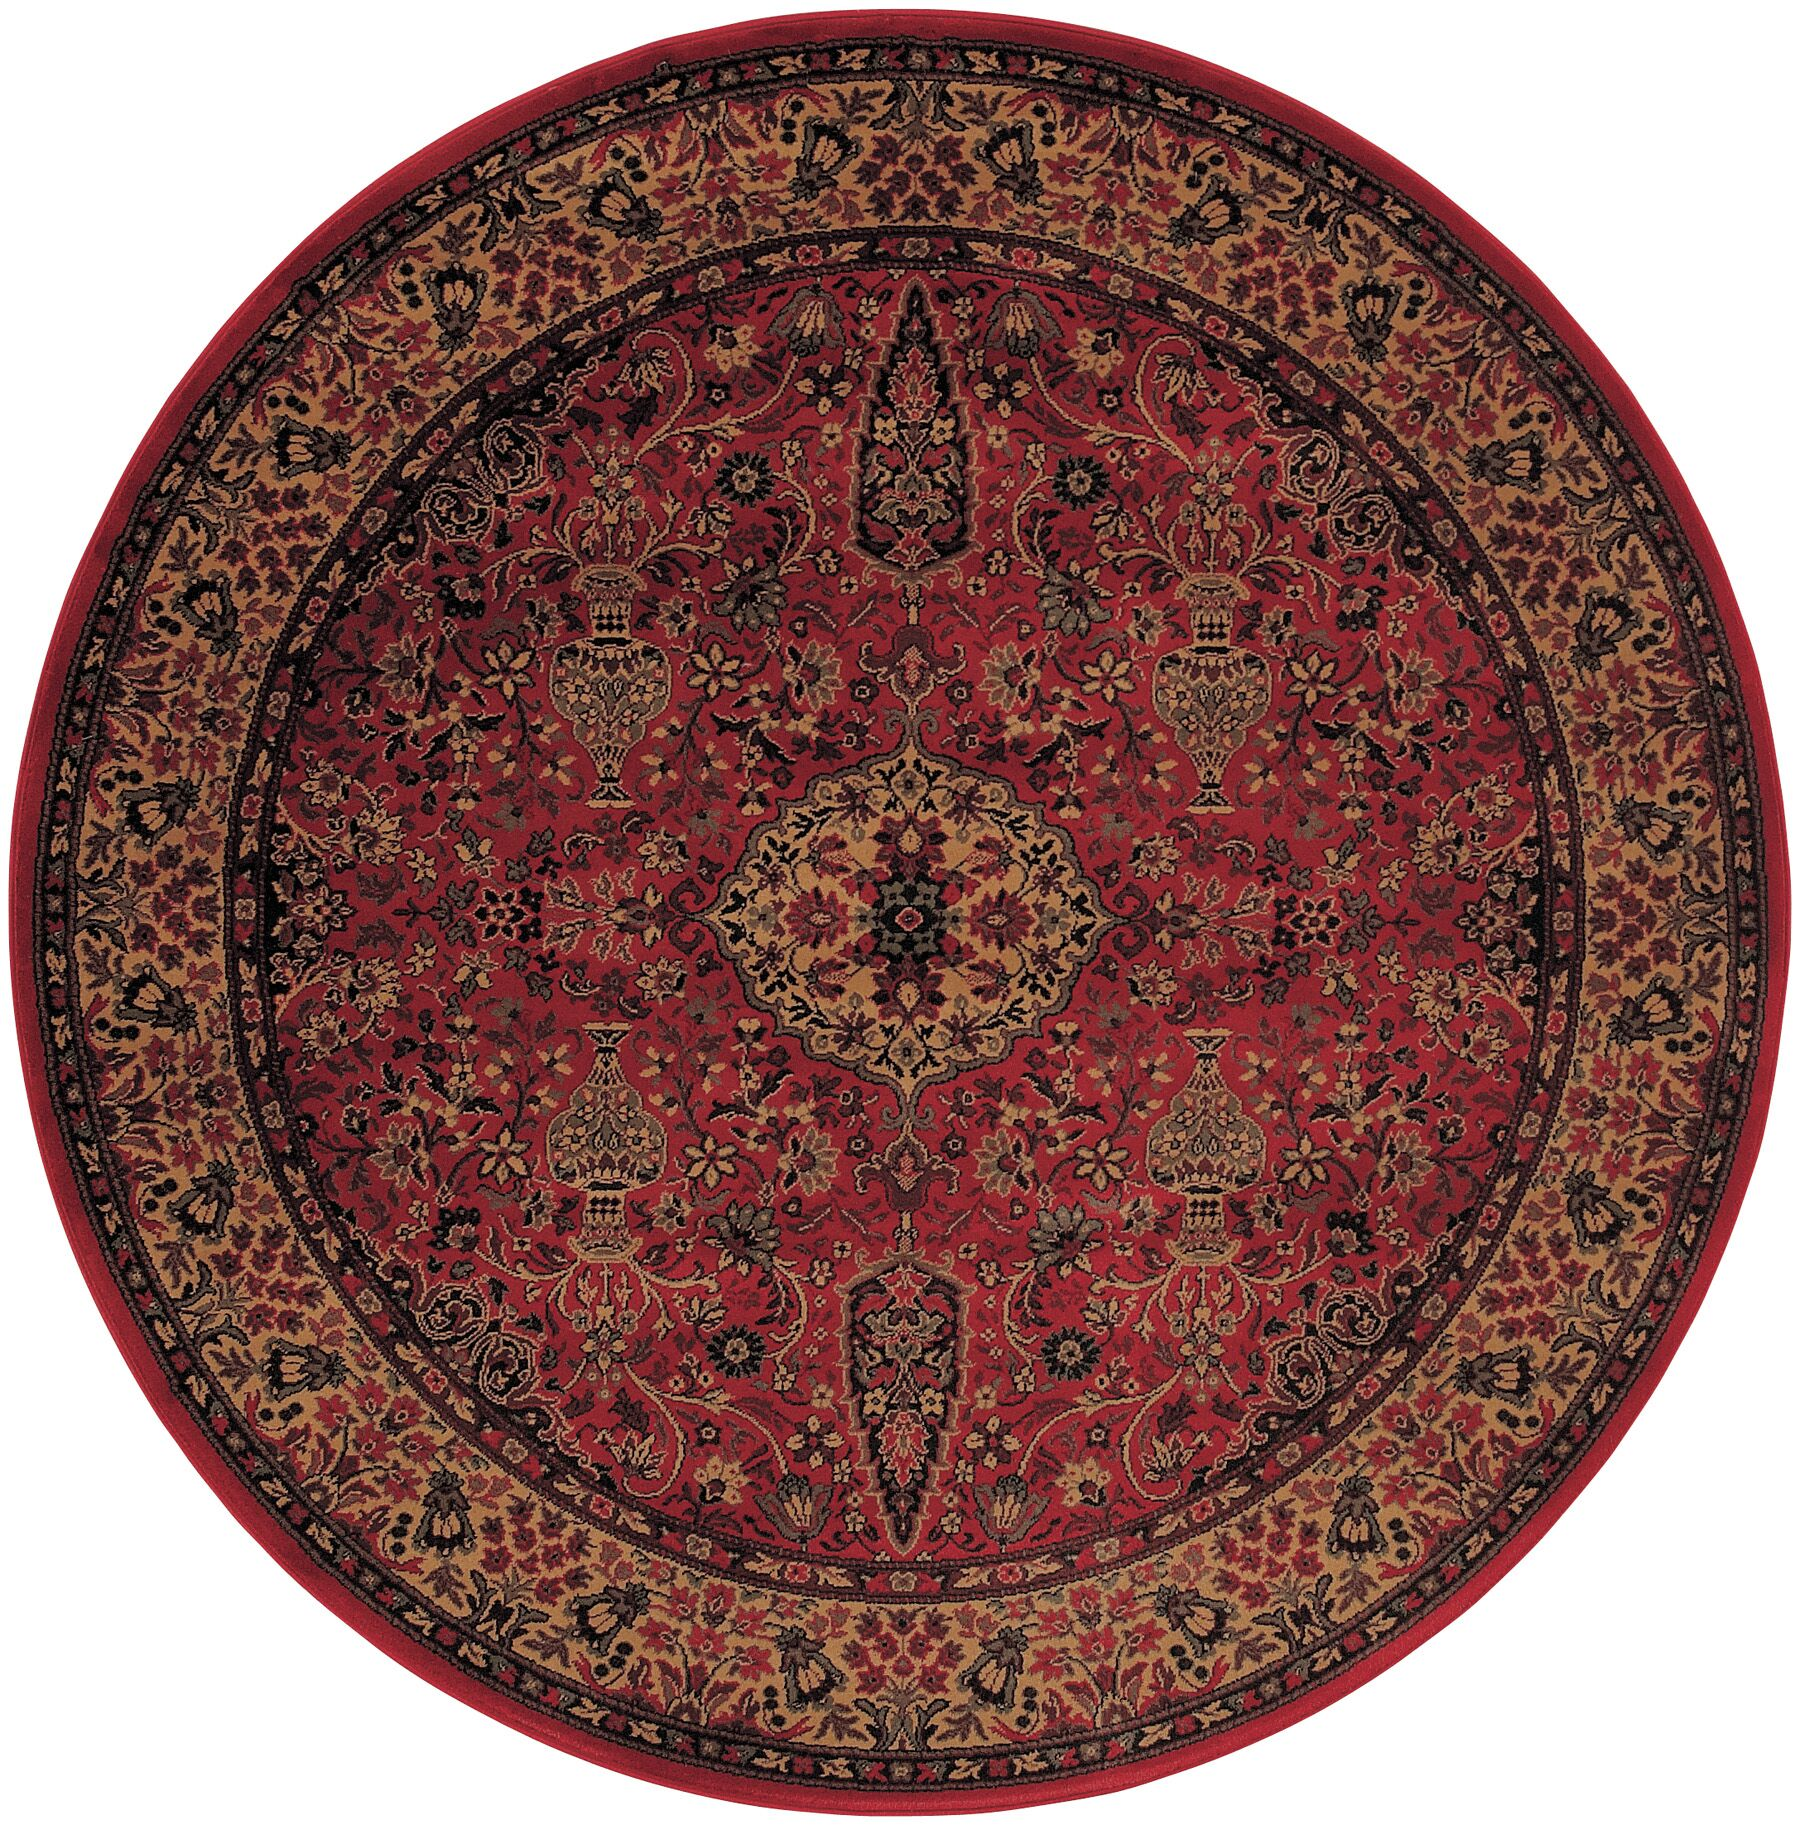 Amsbry Red/Gold Area Rug Rug Size: Round 3'11